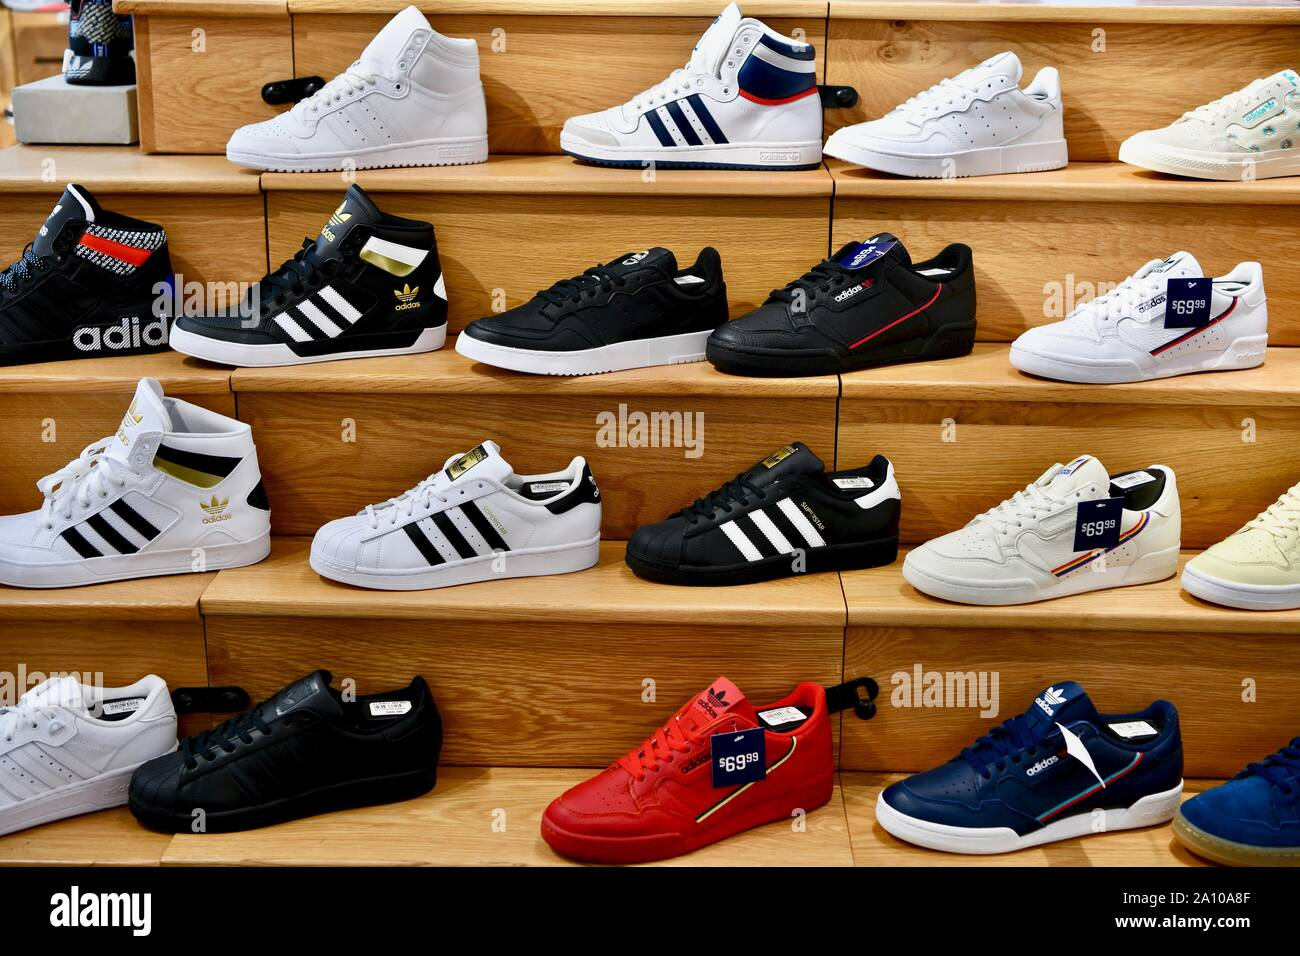 Adidas shoes in the flagship Adidas